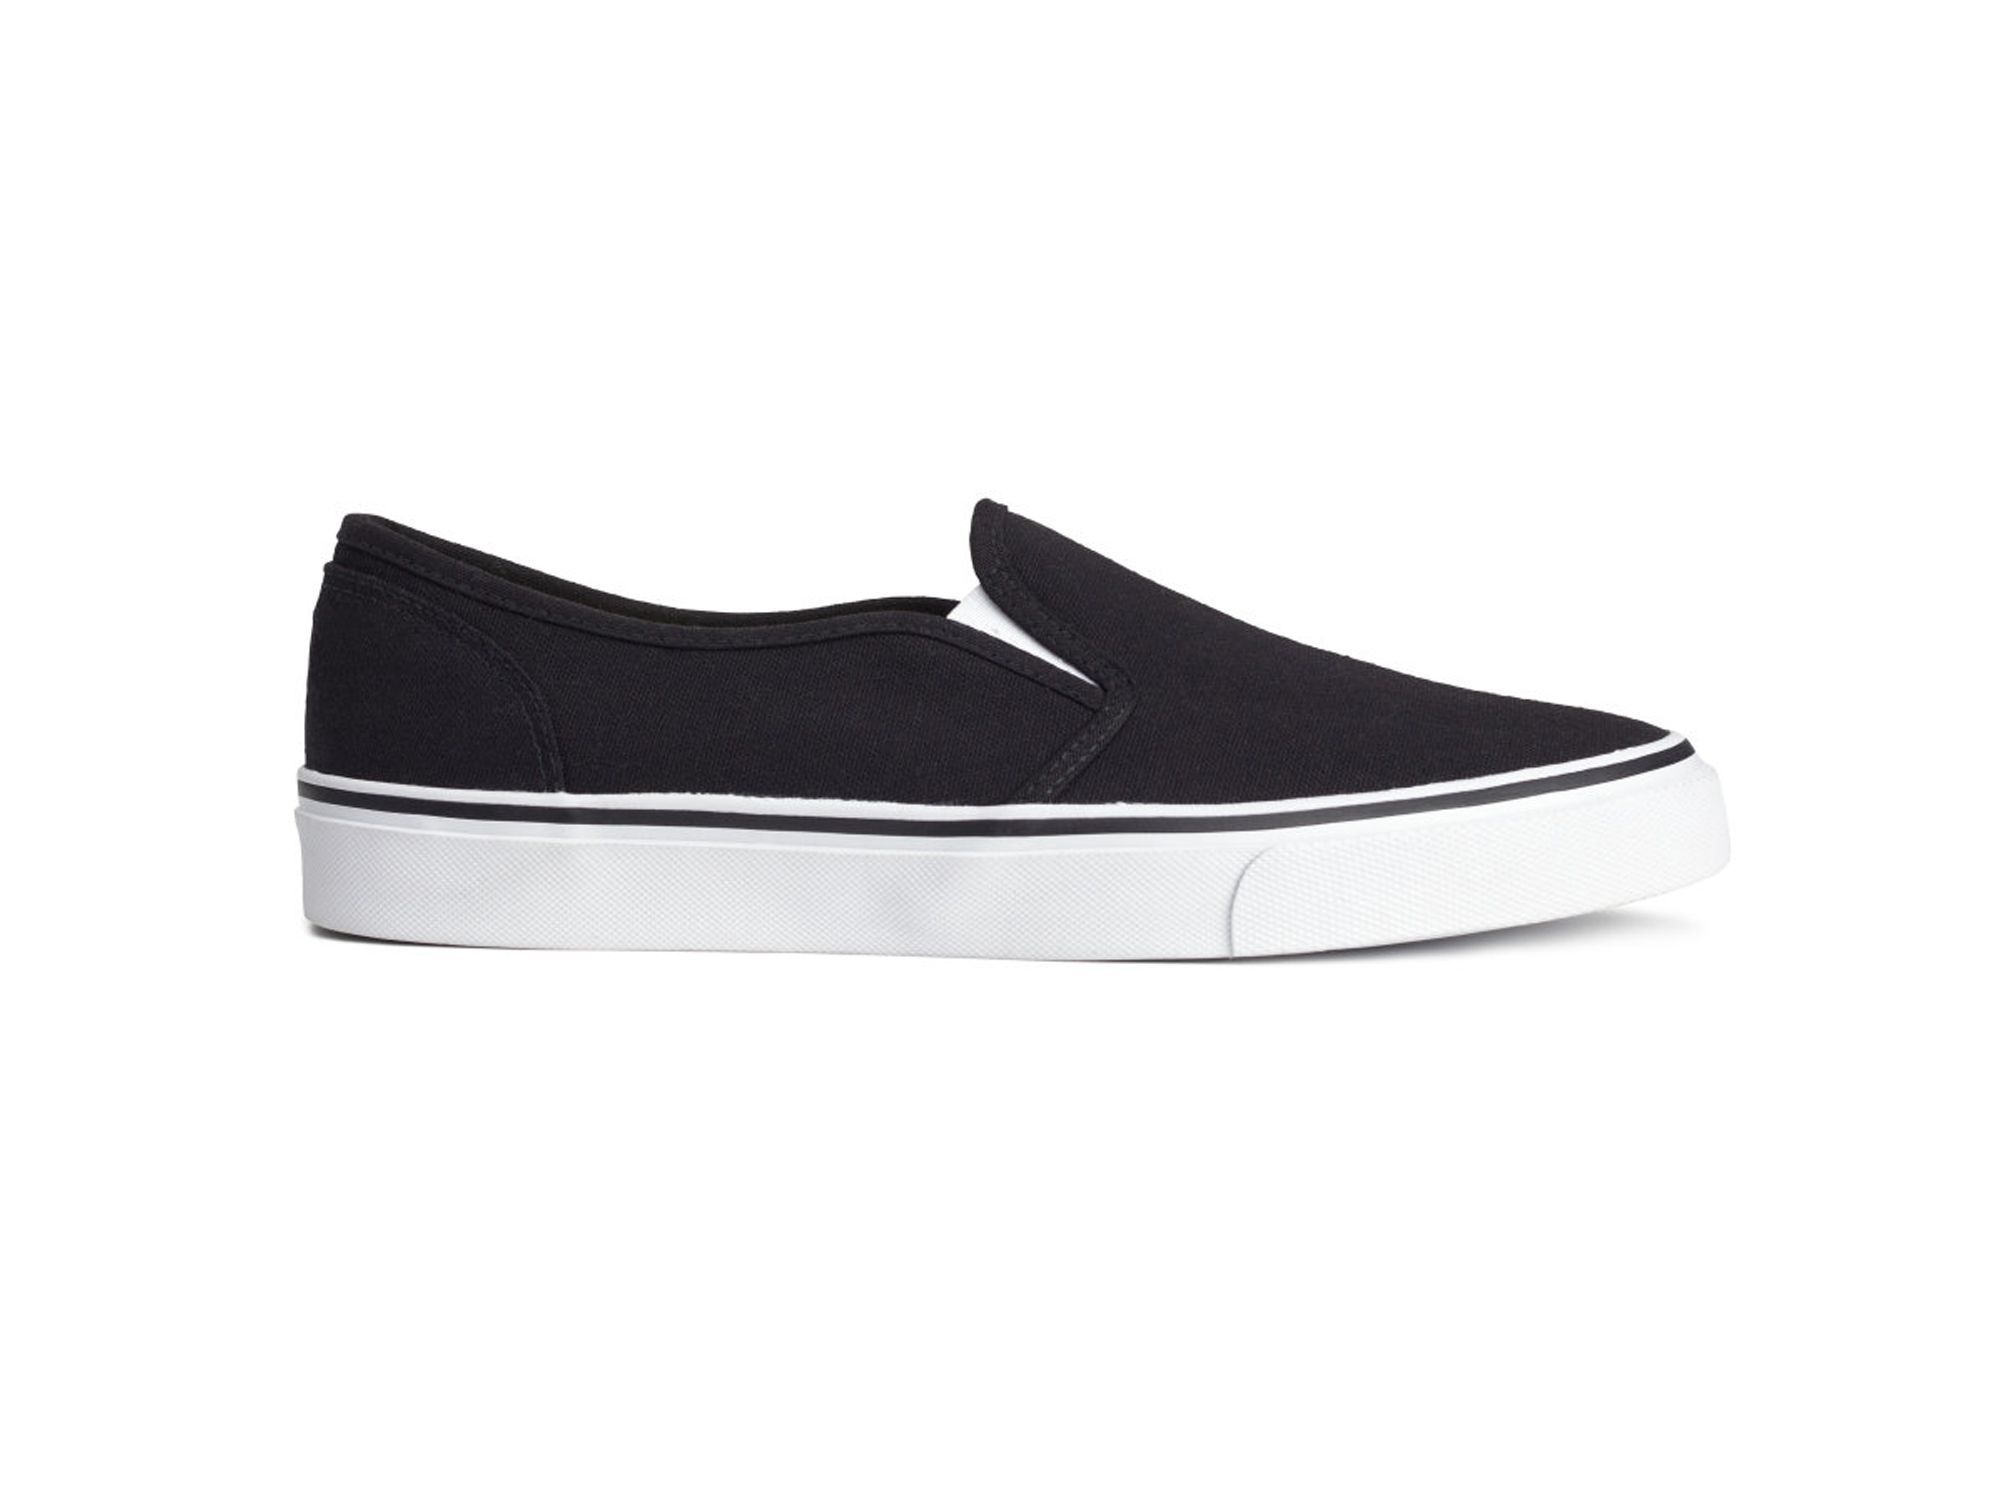 10 Of The Best: Slip-On Sneakers